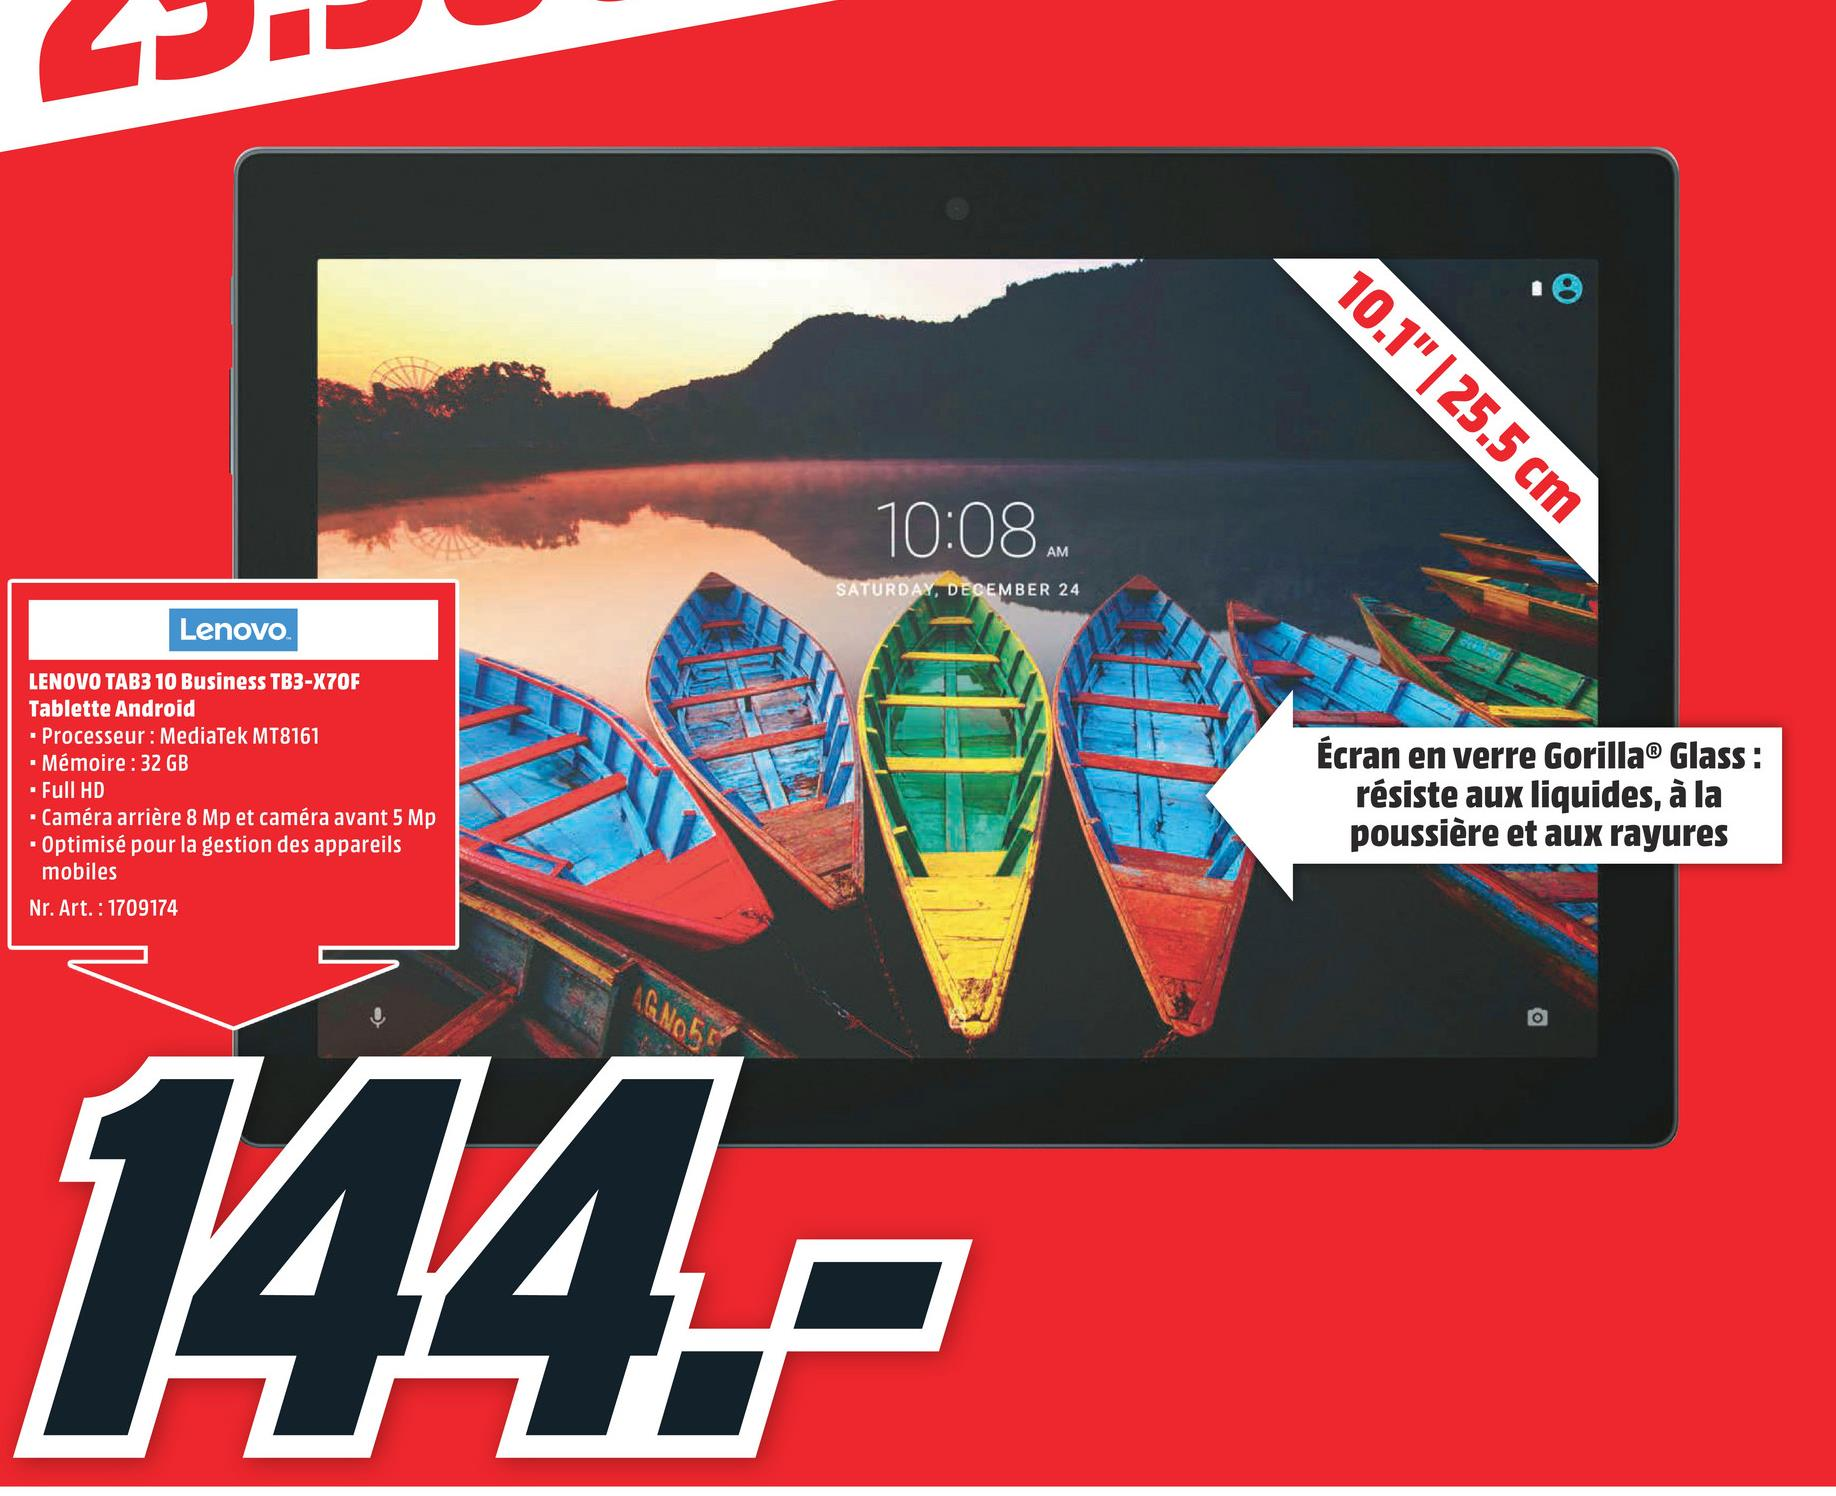 Folder MediaMarkt du 23/04/2018 au 29/04/2018 - LENOVO Tablette Tab 3 10 Business TB3-X70F 10.1'' 32 GB (ZA0X0150SE) ZA0X0150SE TB3-X70F MT8161 2G 32GB 10.1'' AND